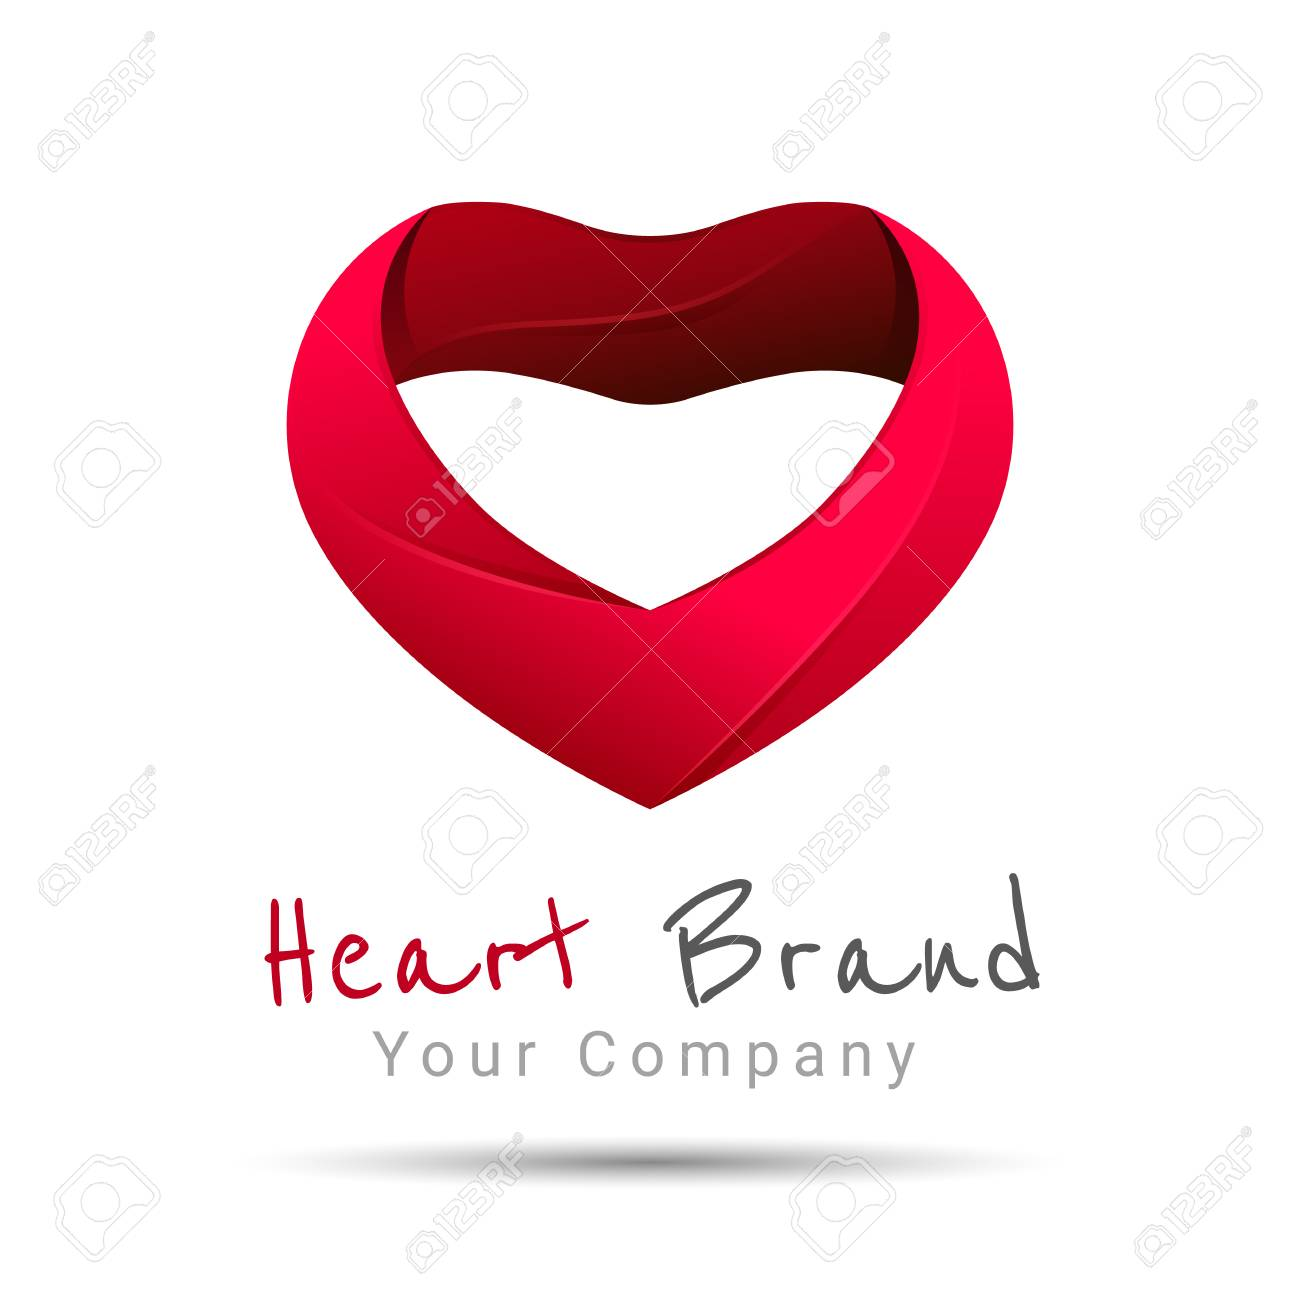 Heart Design Vector Template Happy Valentines Day Concept Love Royalty Free Cliparts Vectors And Stock Illustration Image 65445332